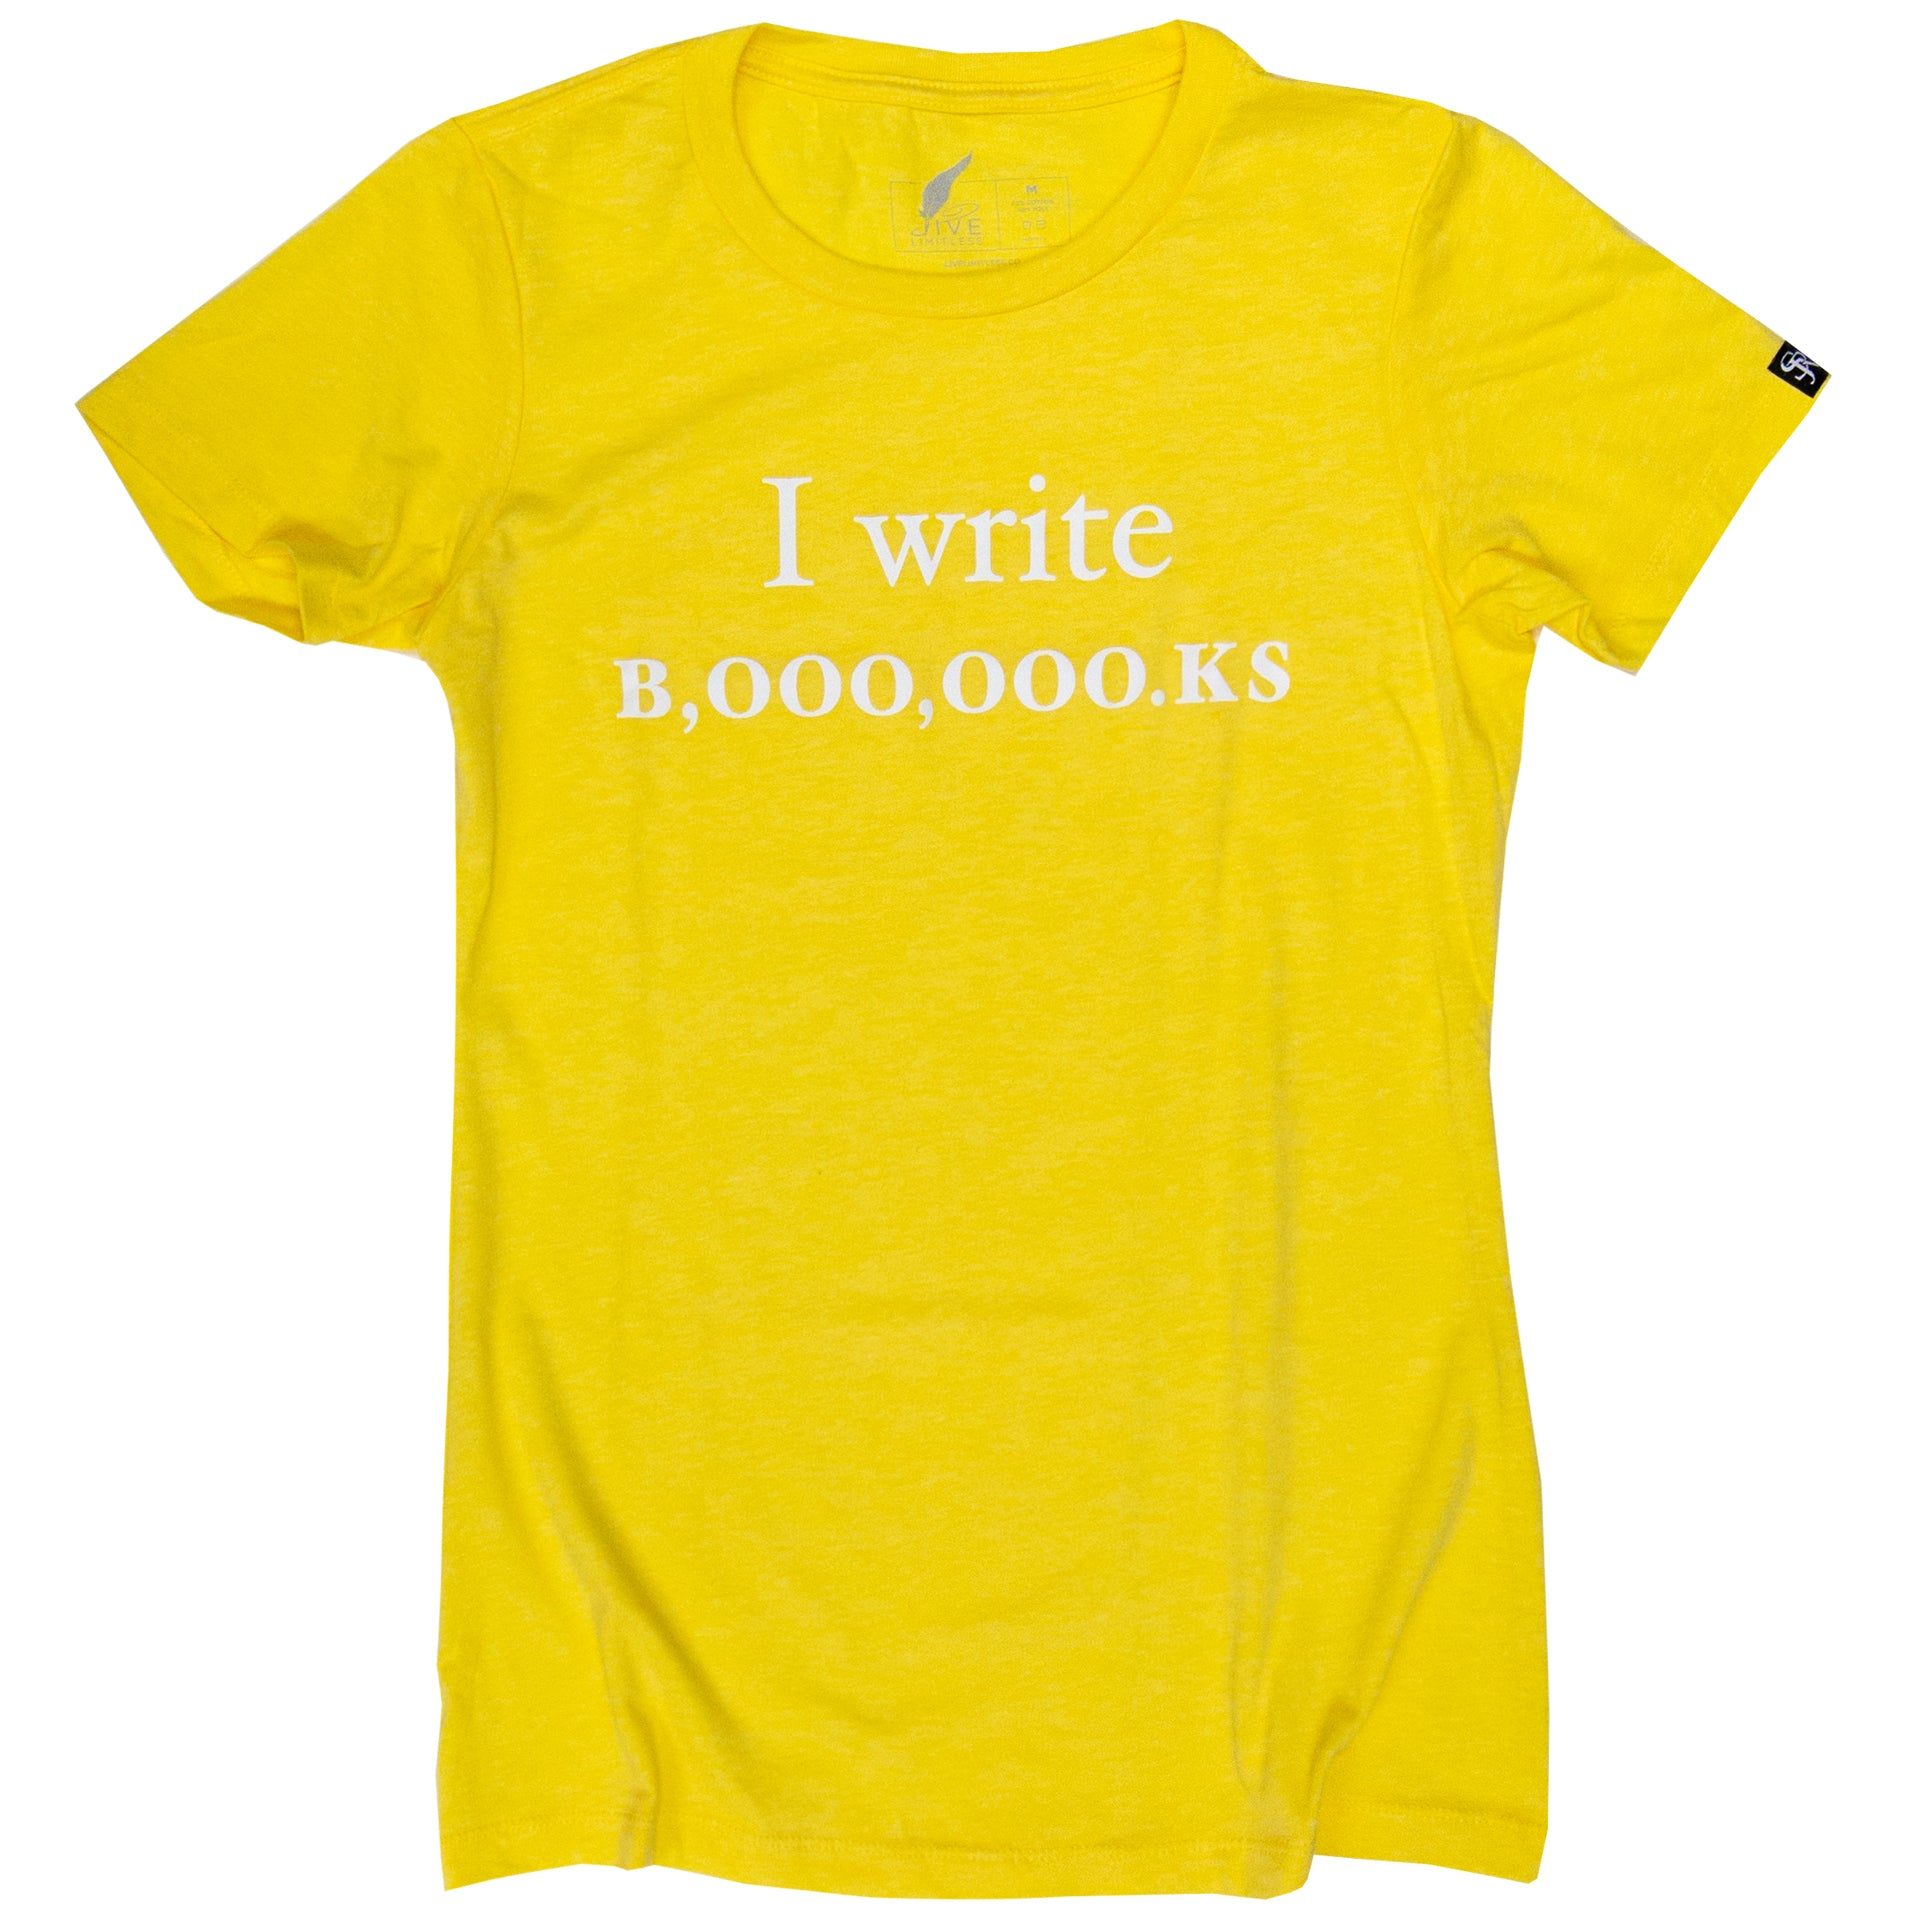 Women's I Write B,000,000.KS (Yellow)